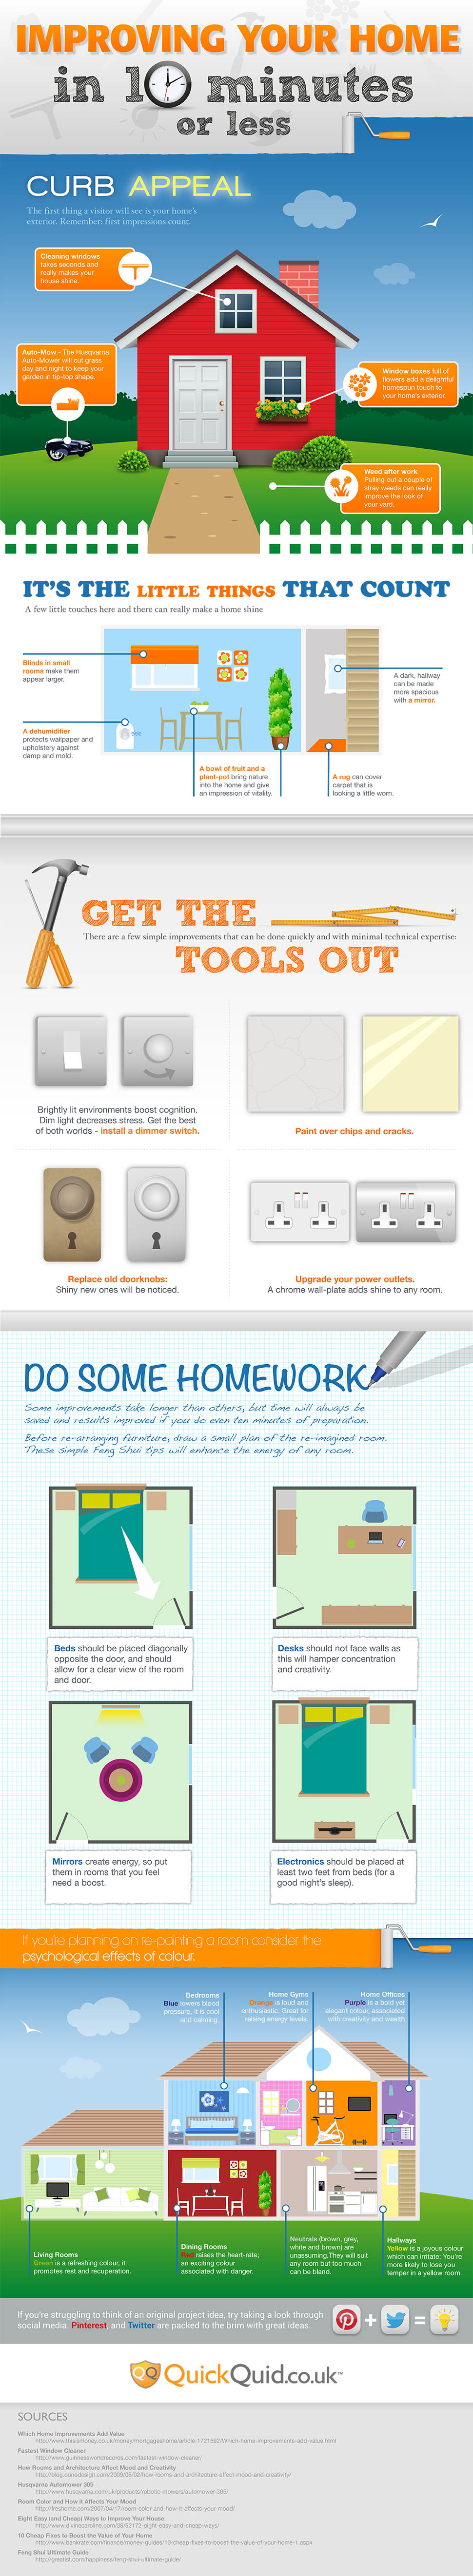 Tips to Improve Home